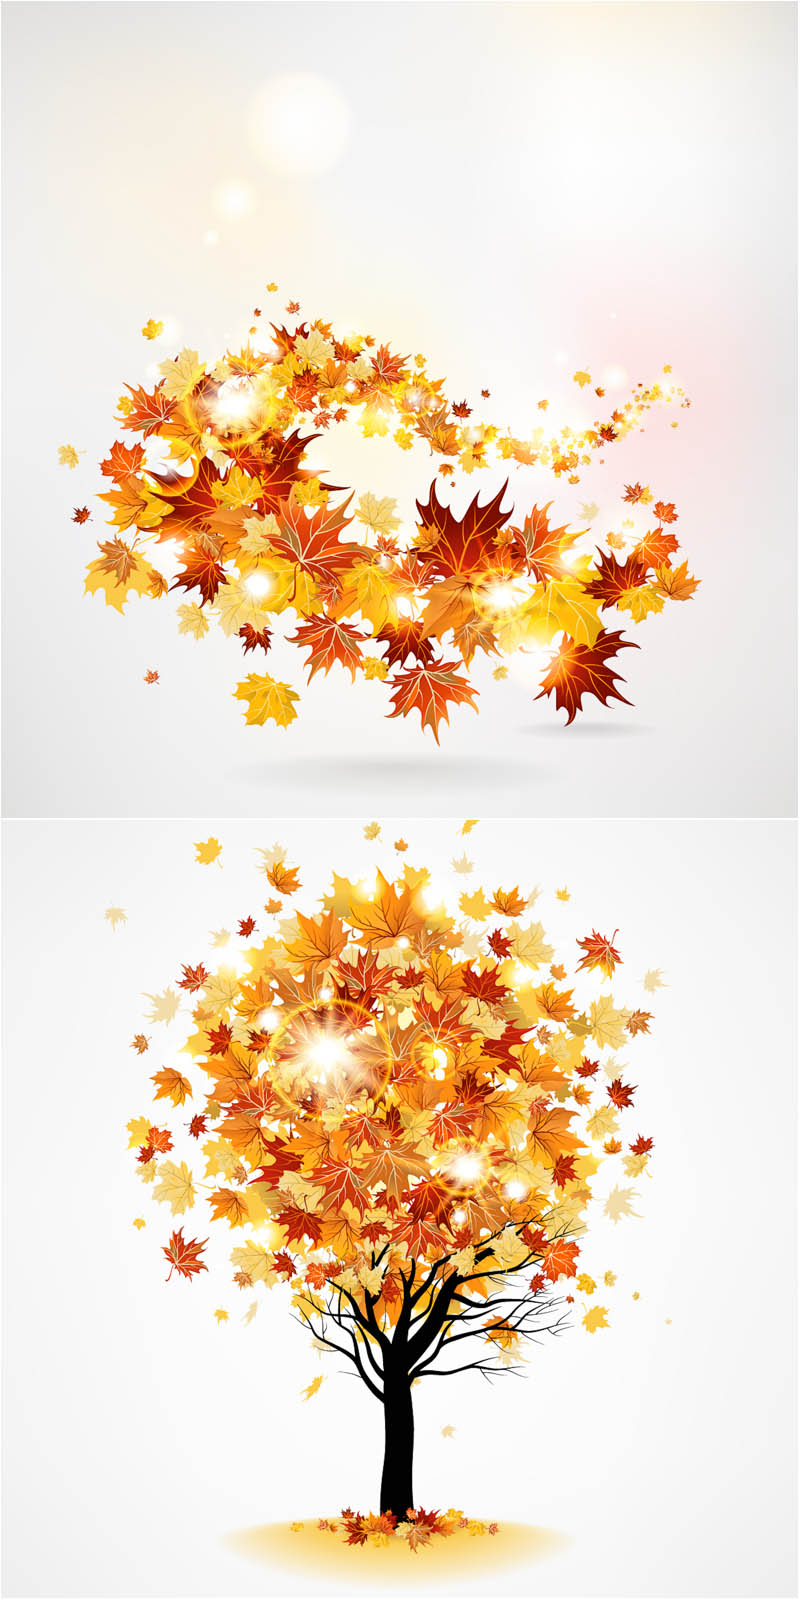 Tree And Fall Leaves Swirl For Your Seasonal Designs And Decorations